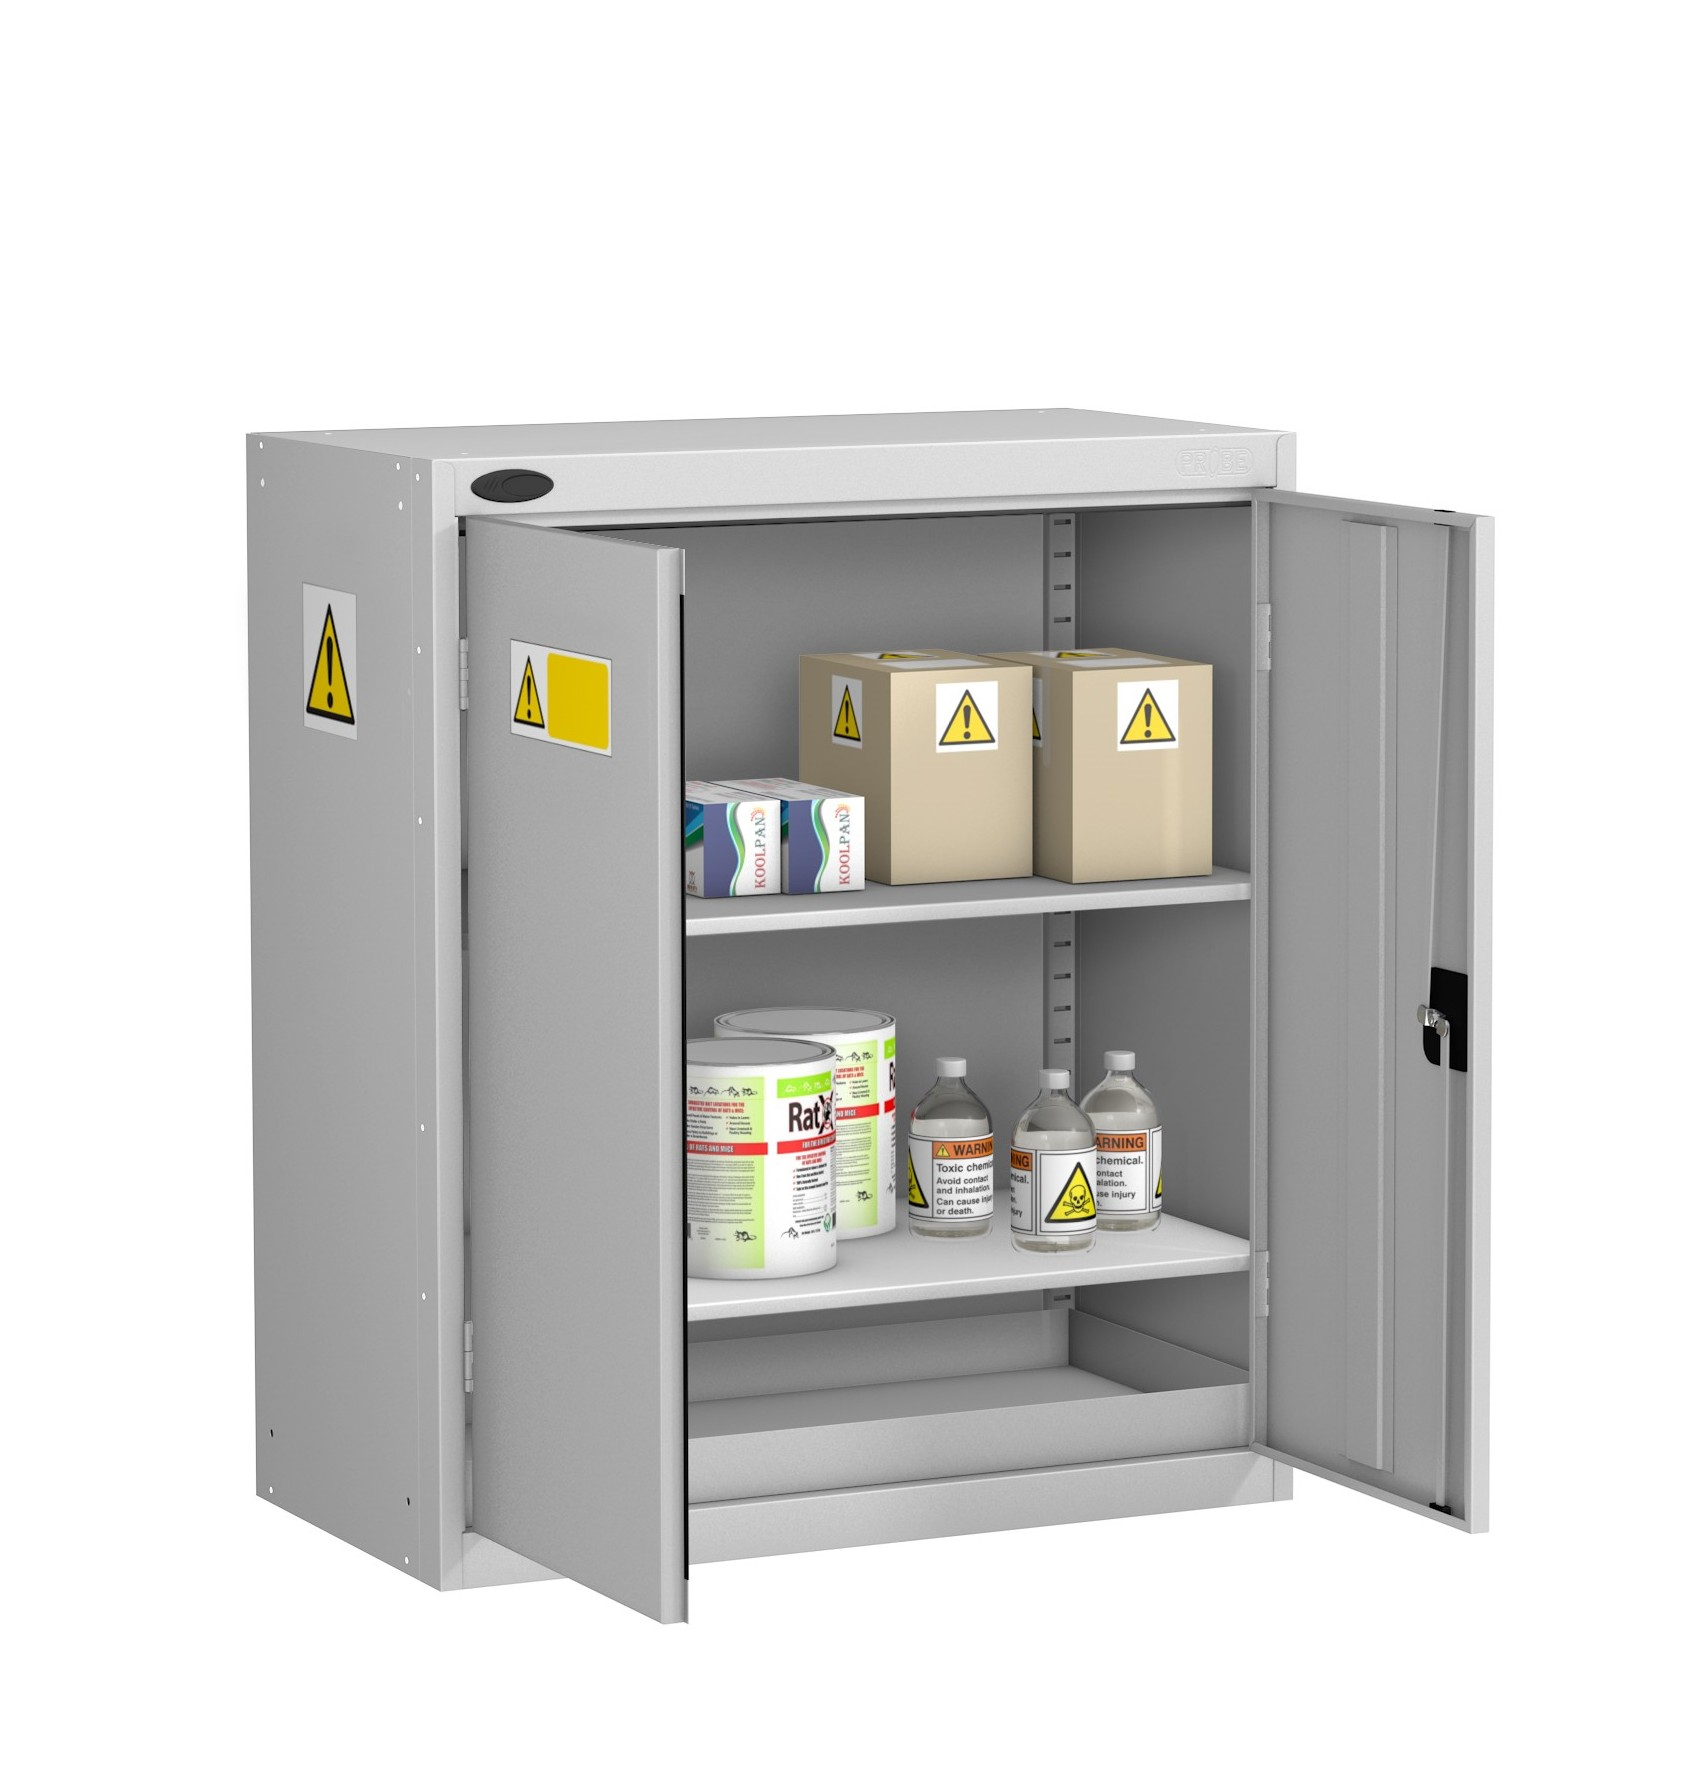 Low level COSHH Cabinet